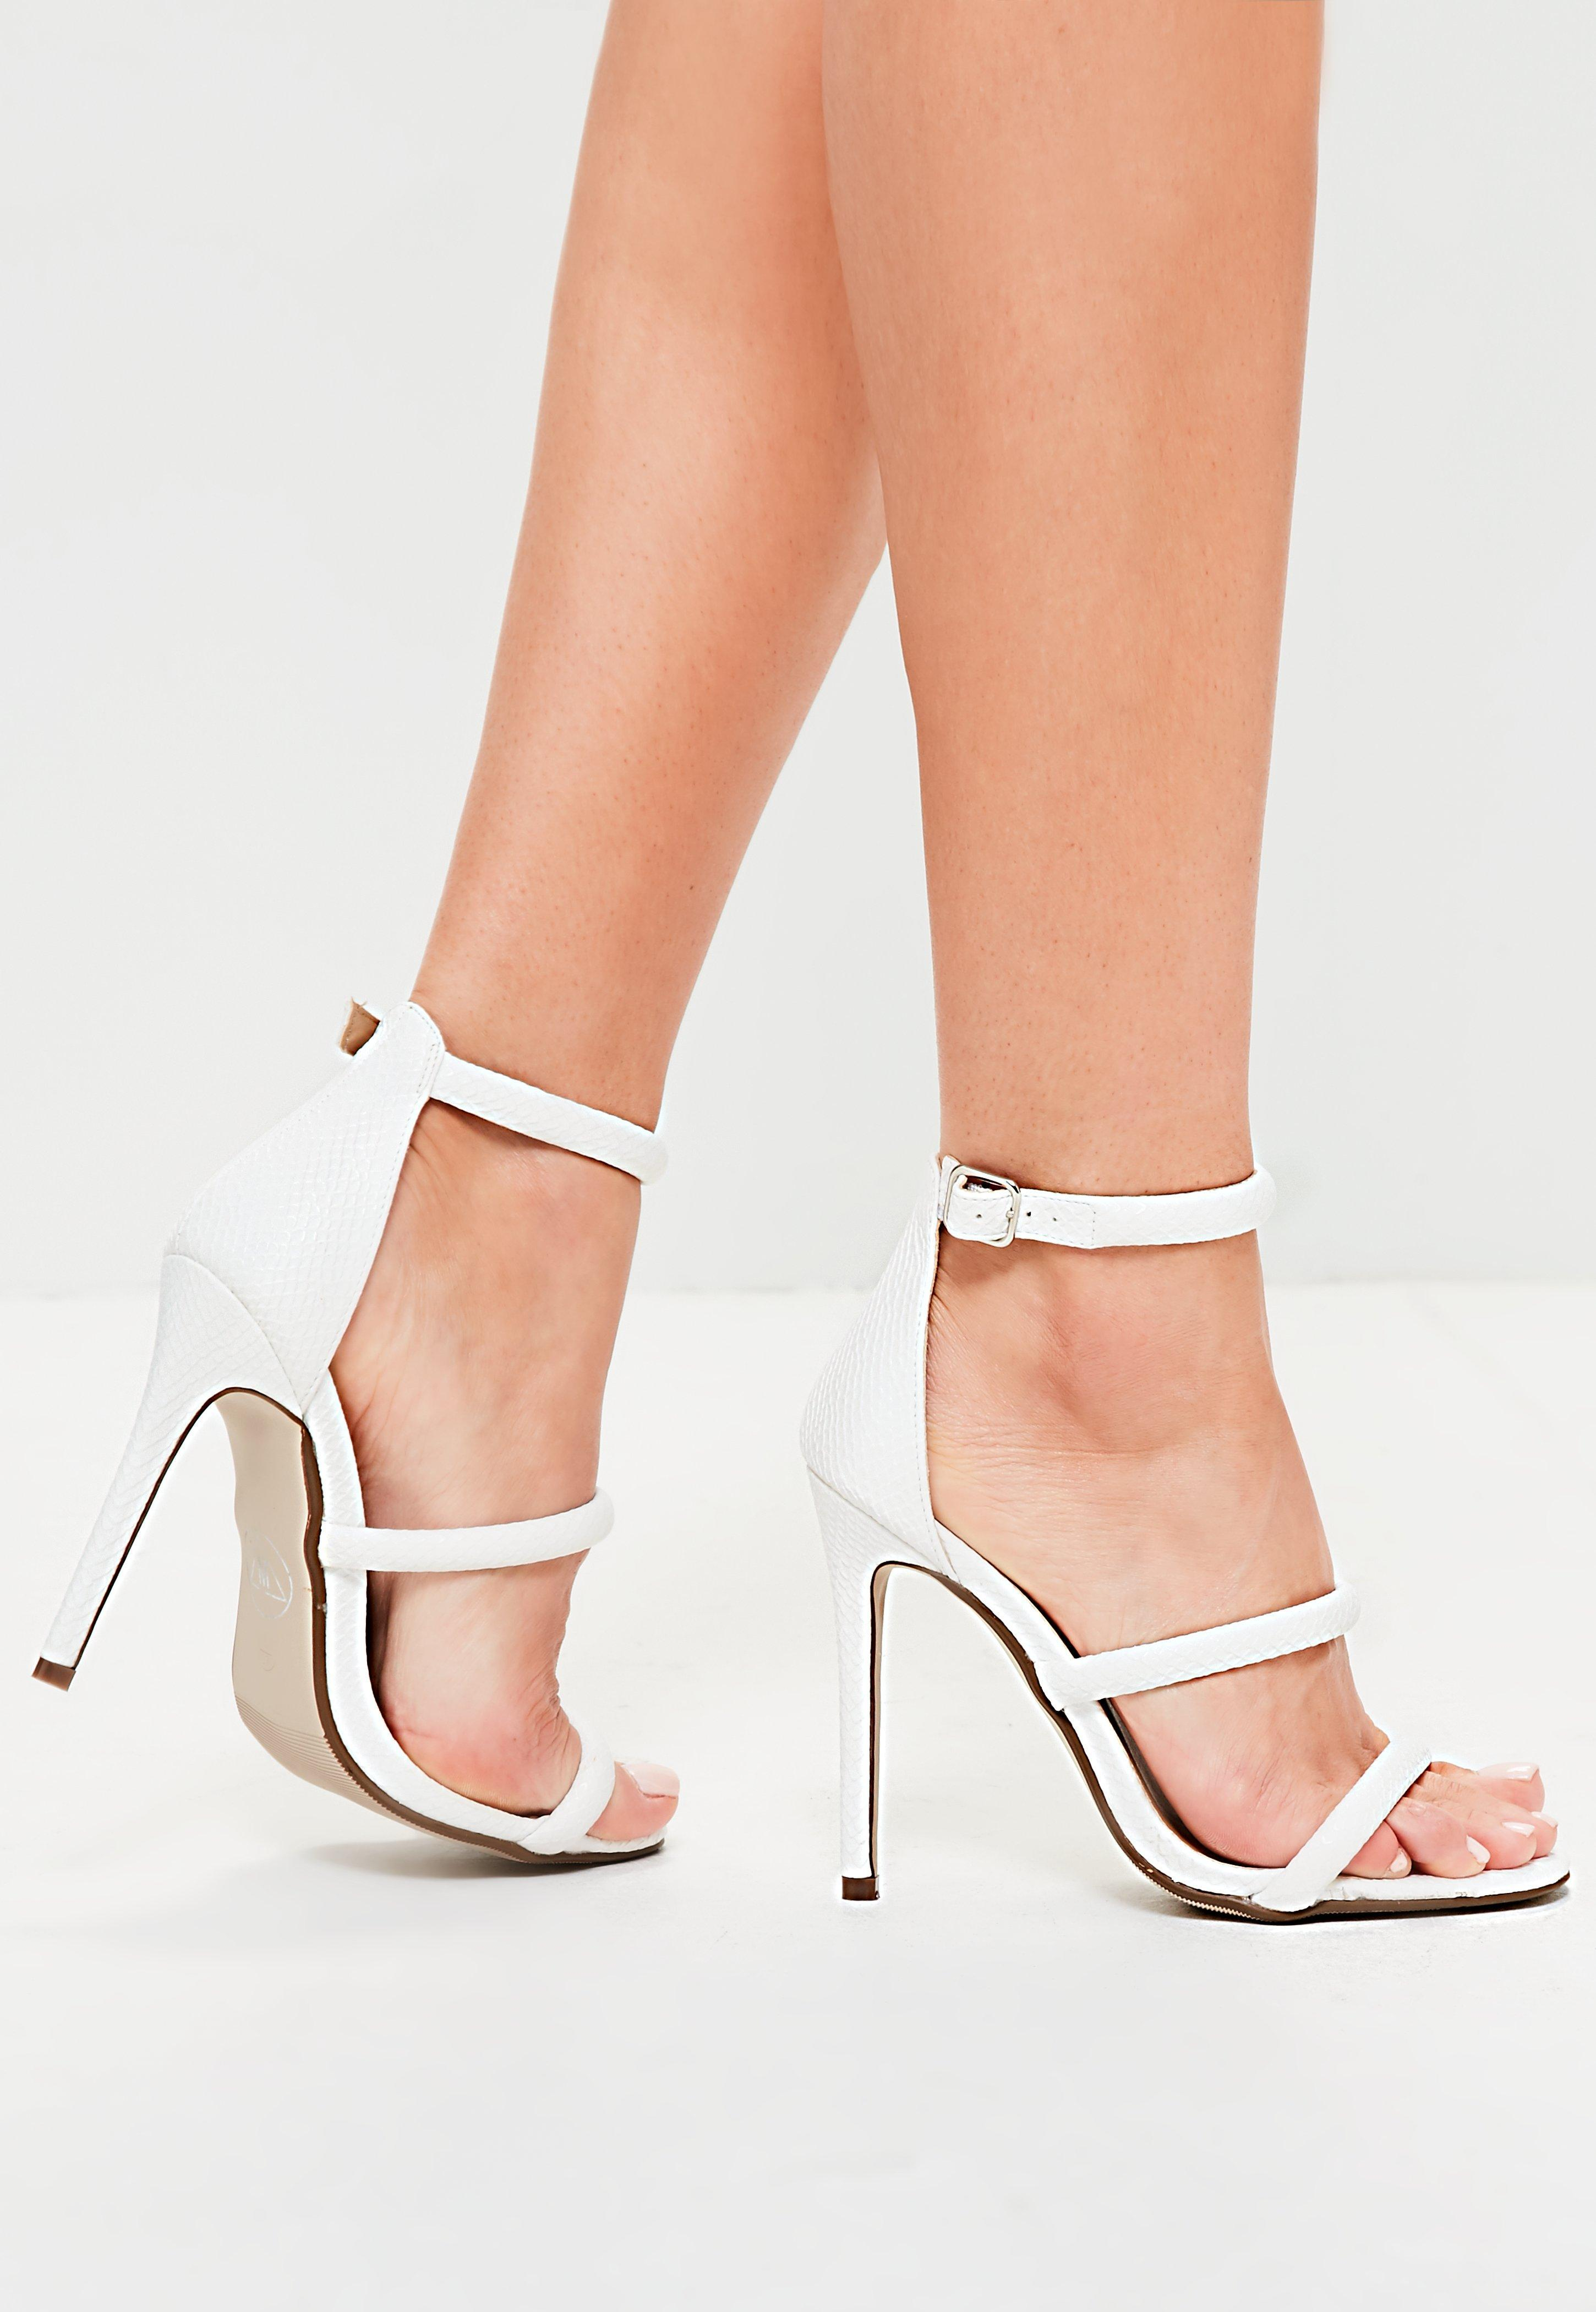 08b1b5ae3cef Lyst - Missguided White Rounded Three Strap Barely There Heels in White